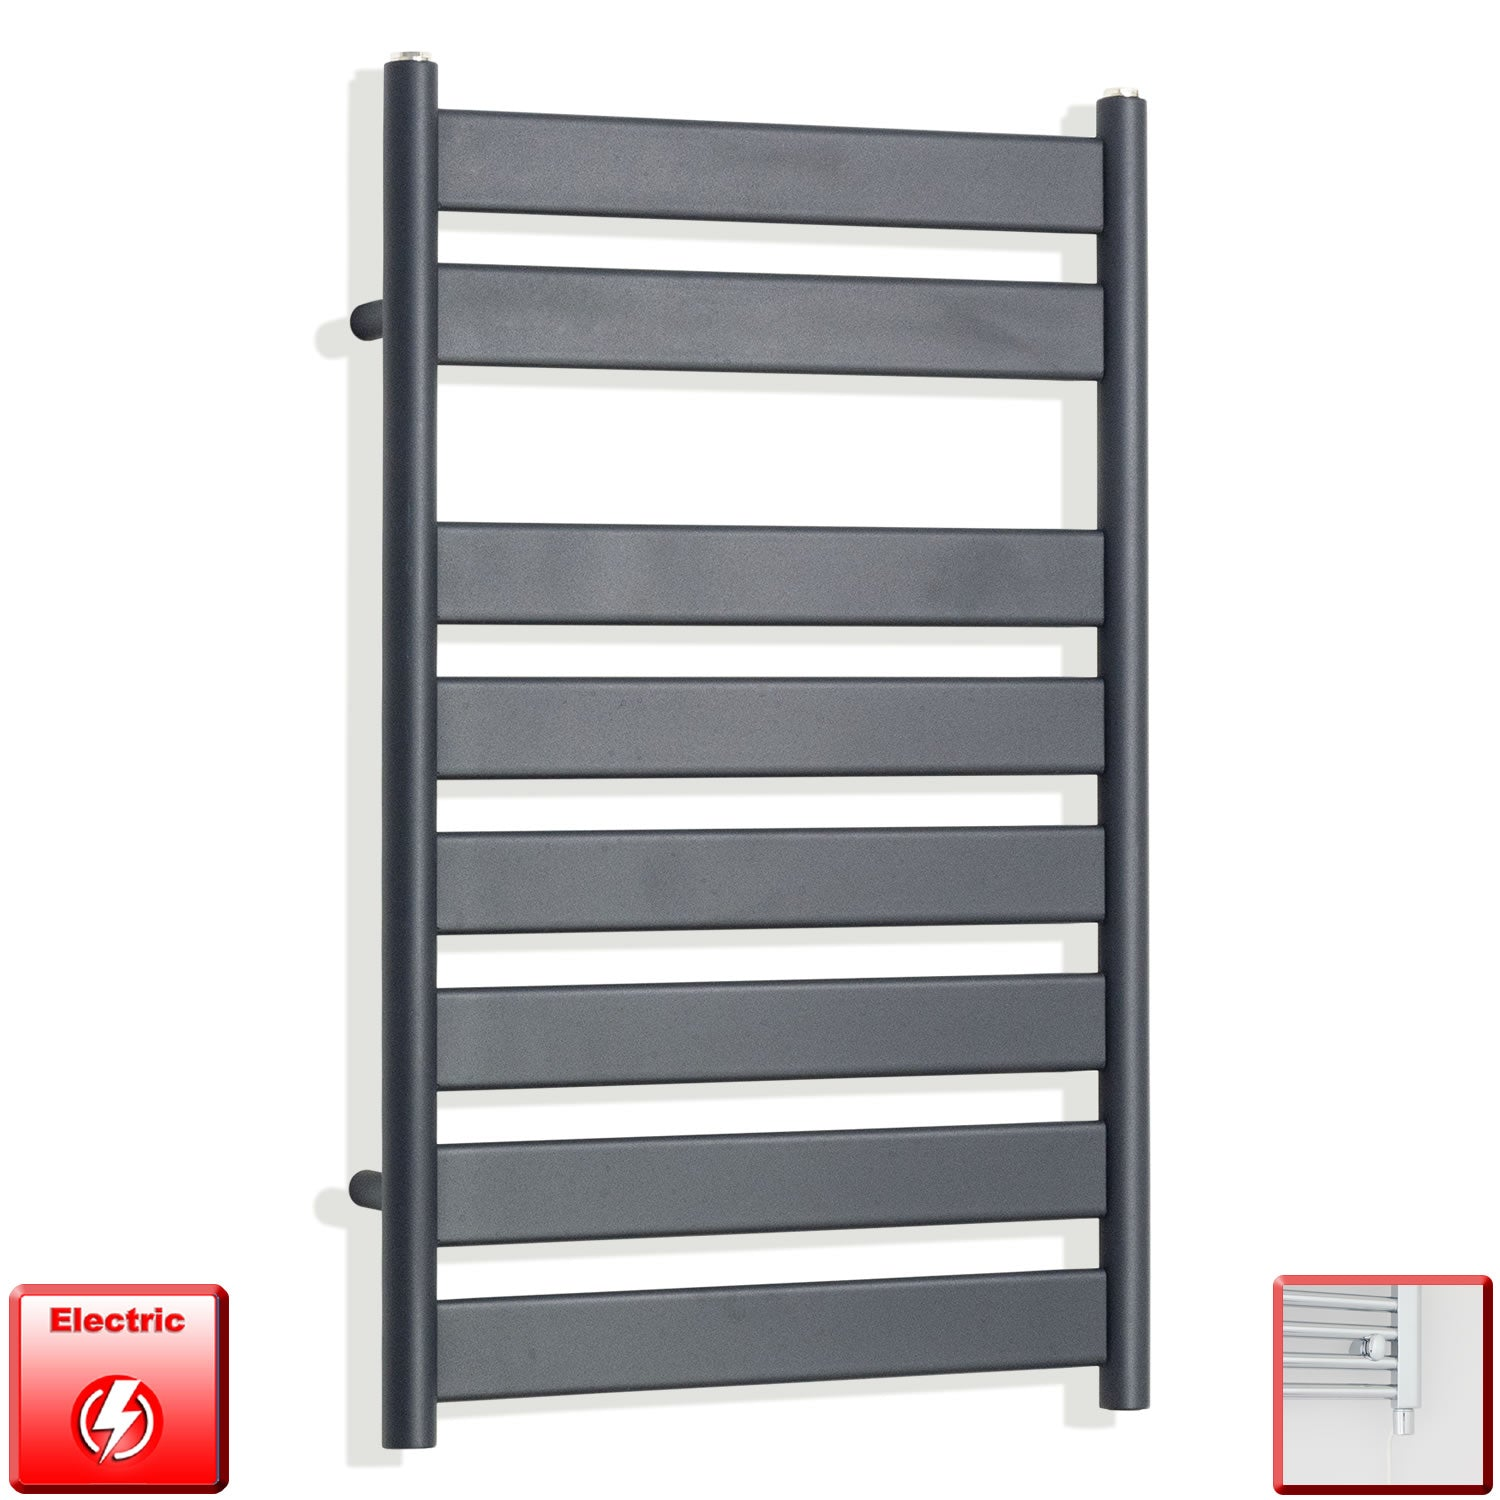 500mm Wide 800mm High Flat Panel Designer Anthracite Heated Towel Rail Radiator HTR,Electric Single Heat Element